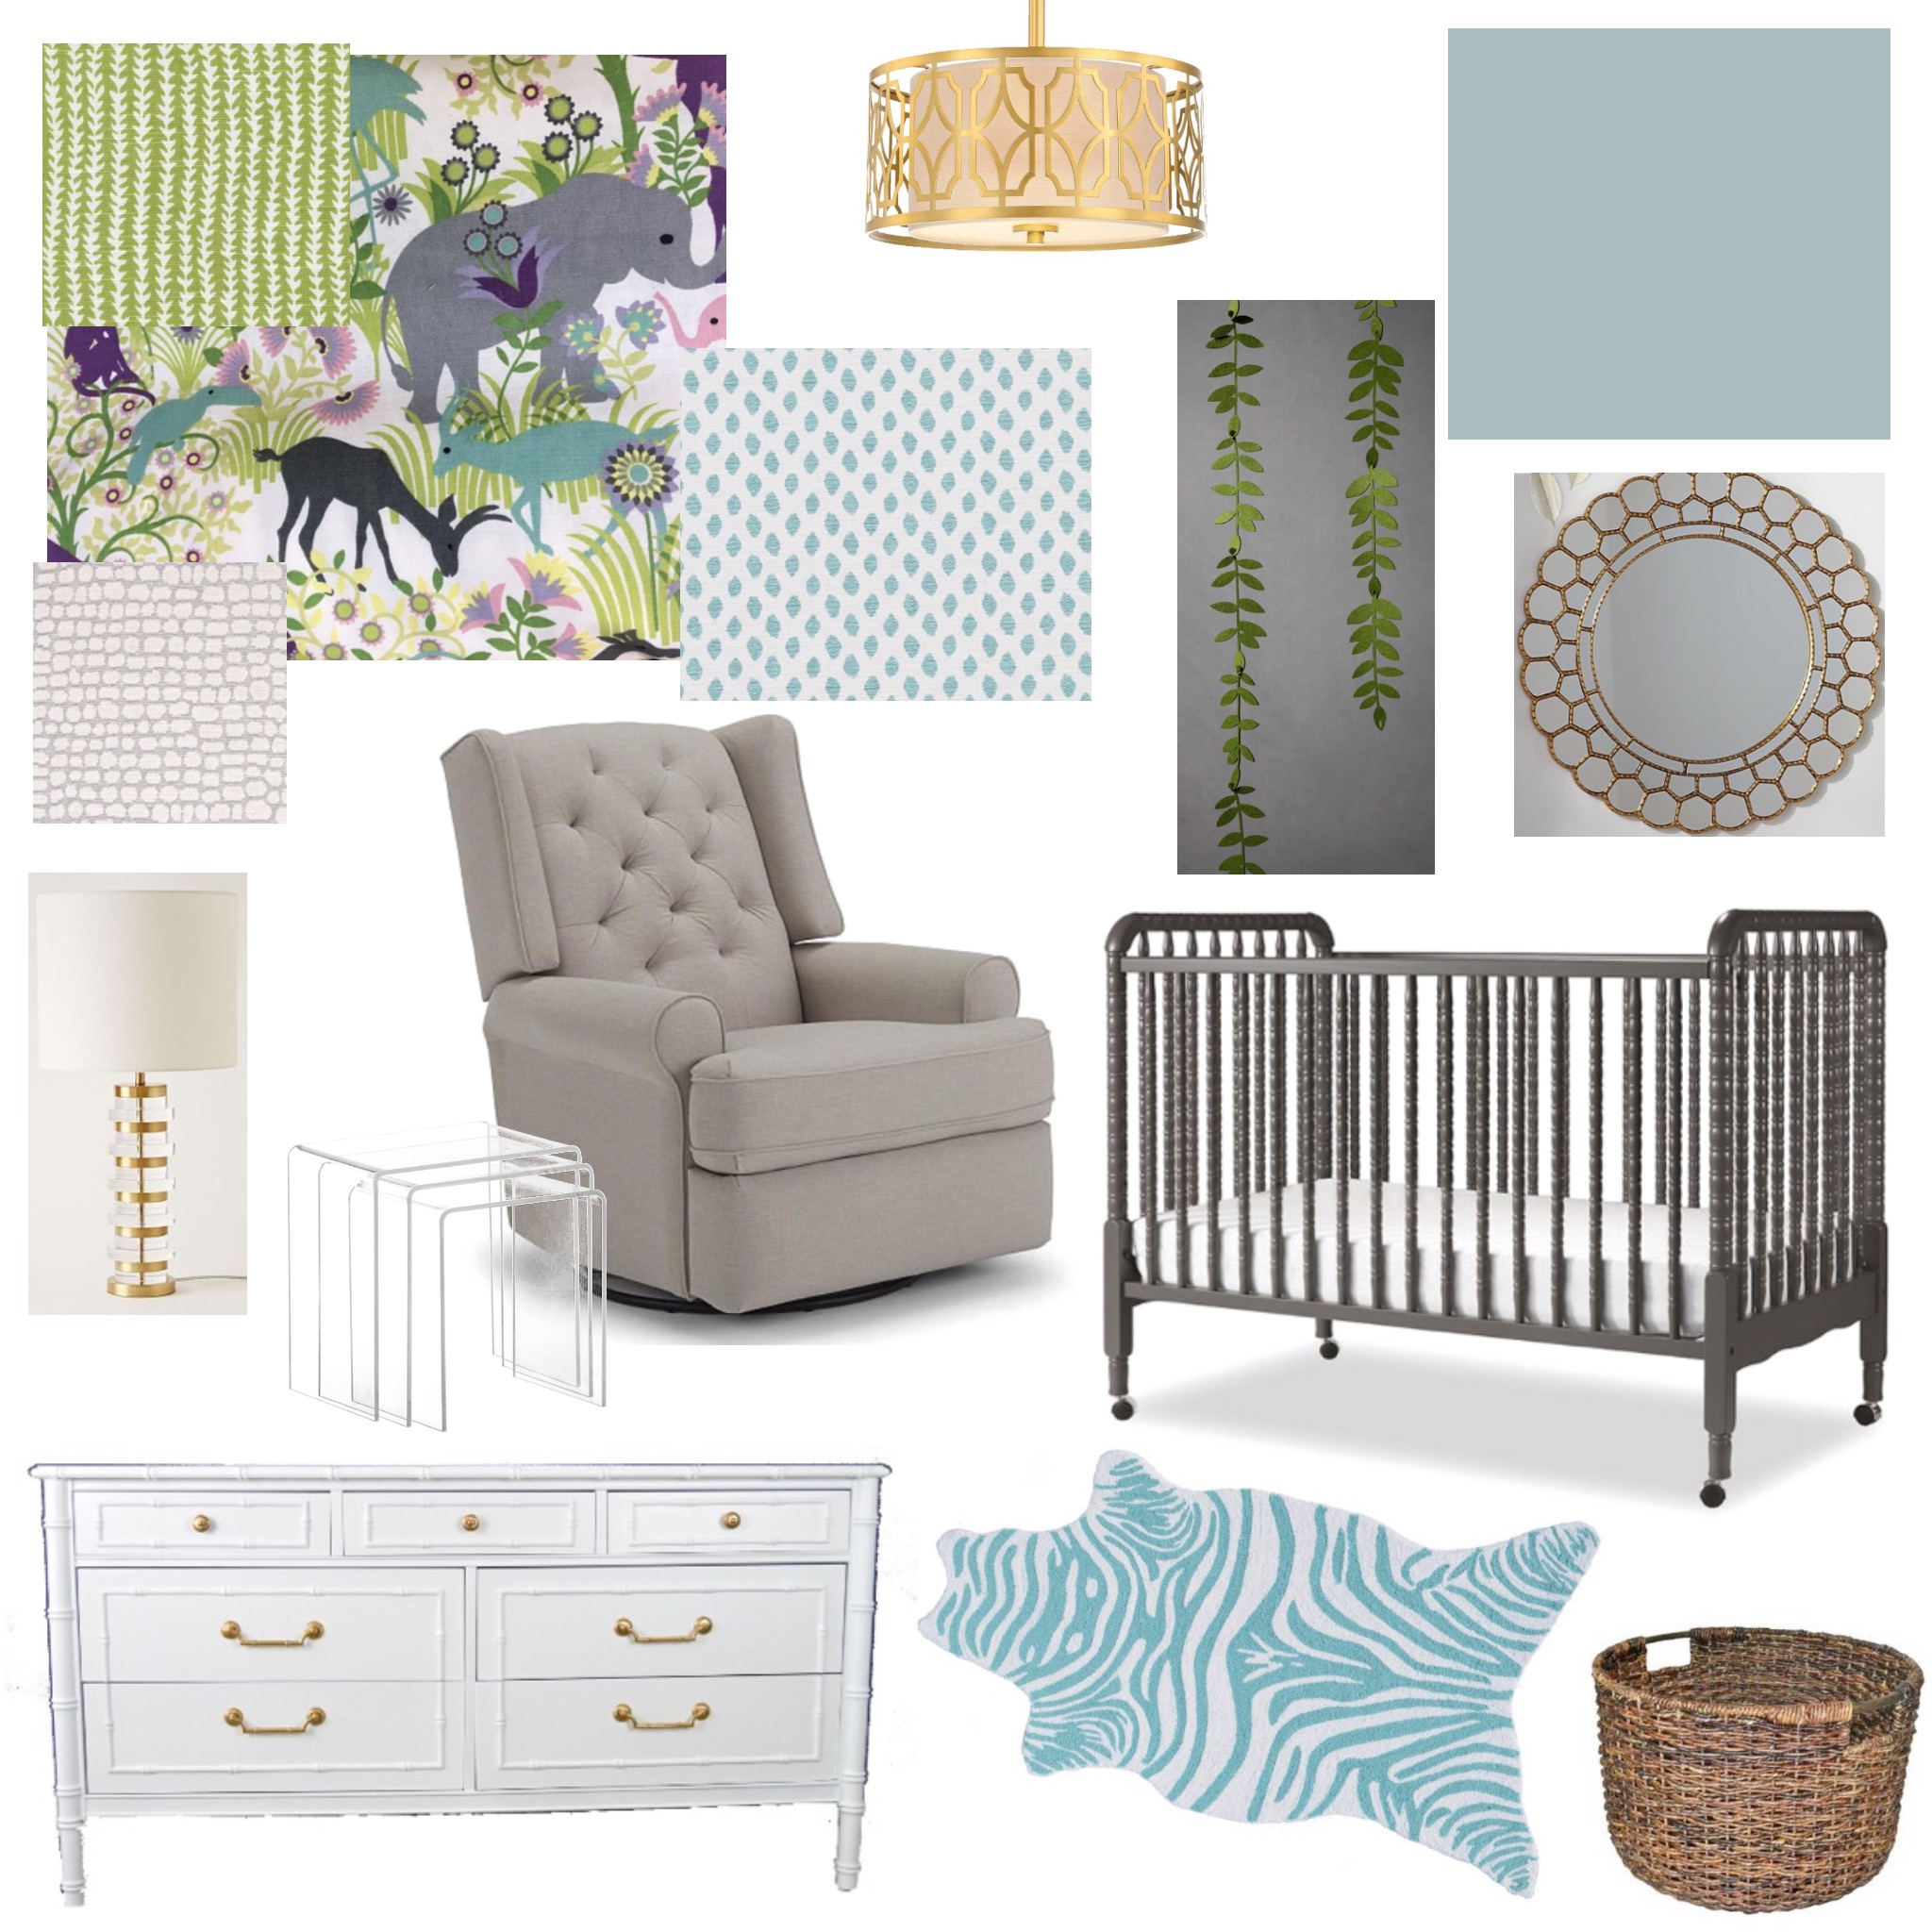 Version 1: Boy Nursery